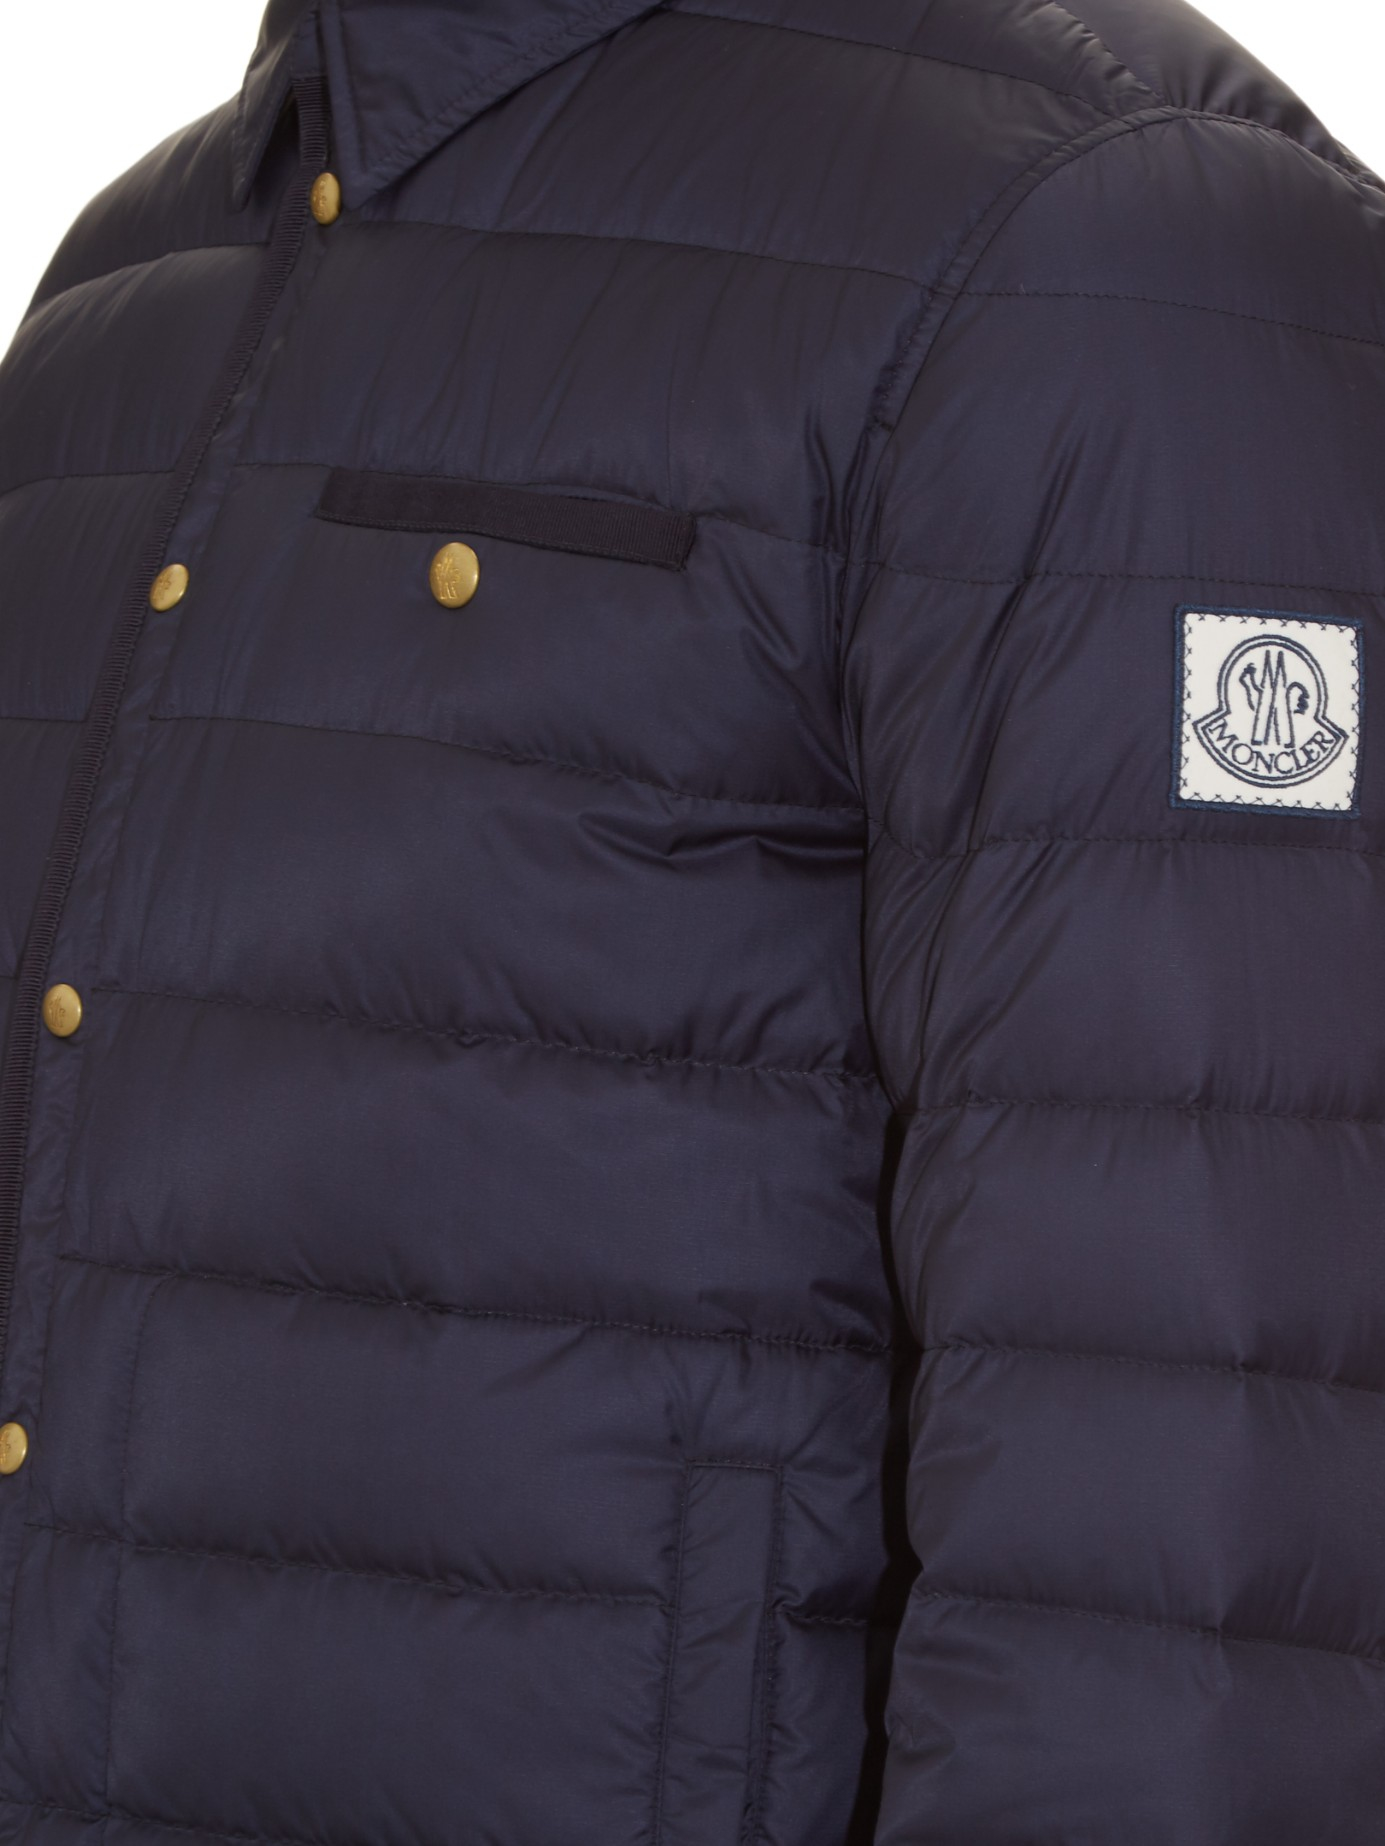 Lyst - Moncler Gamme Bleu Point-collar Quilted-down Jacket in Blue for Men